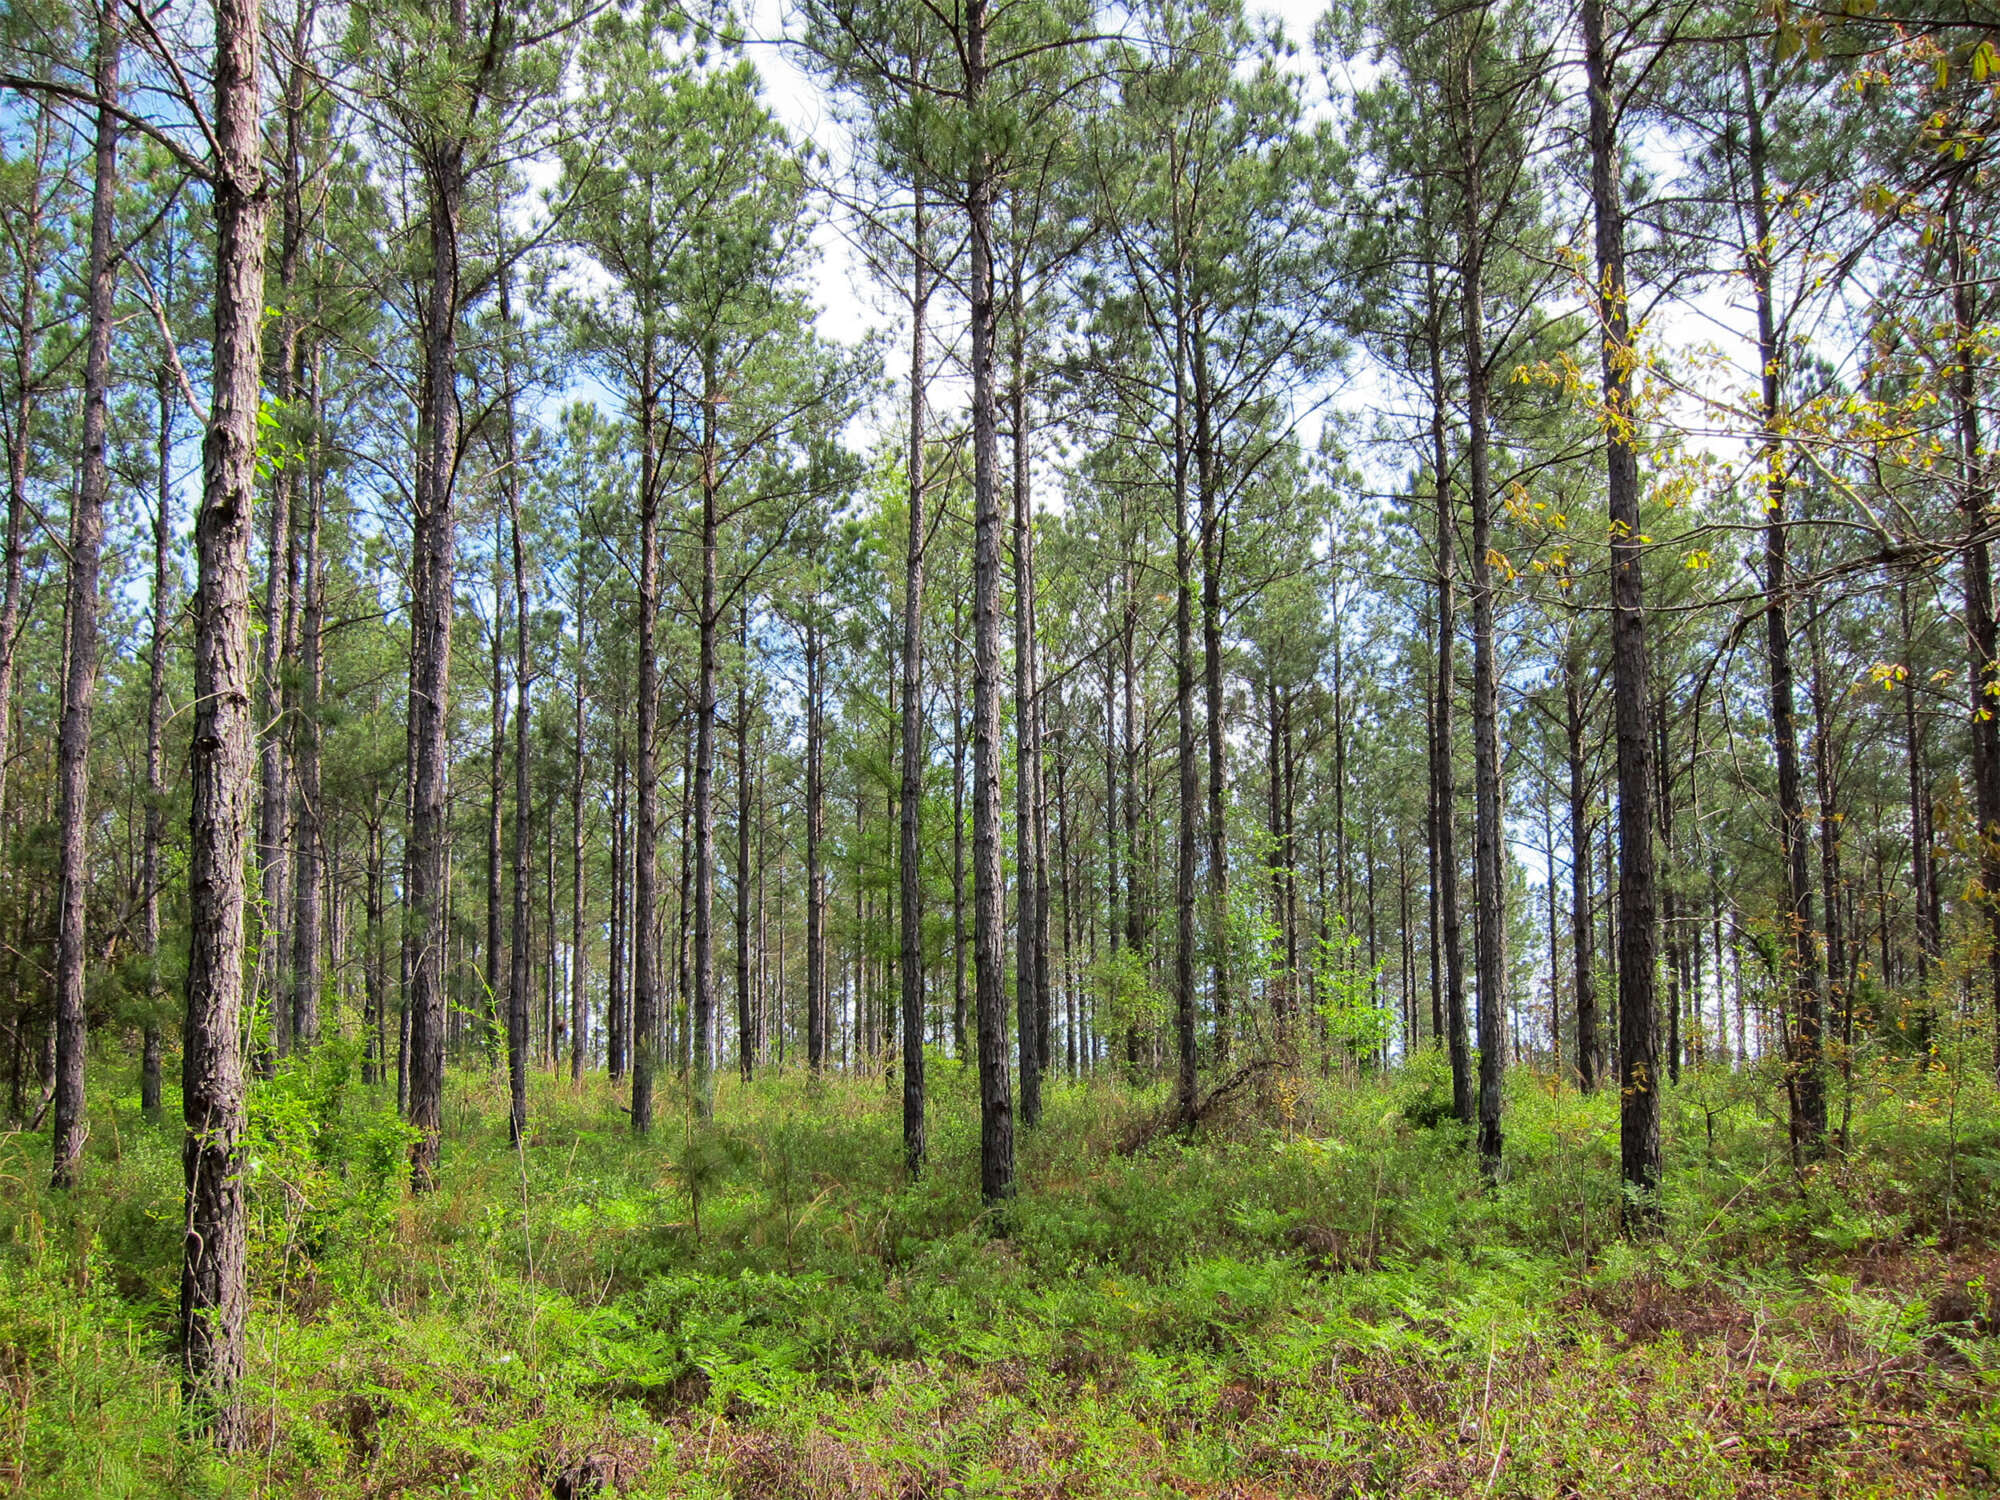 View from inside timber tract with forest of young pine trees